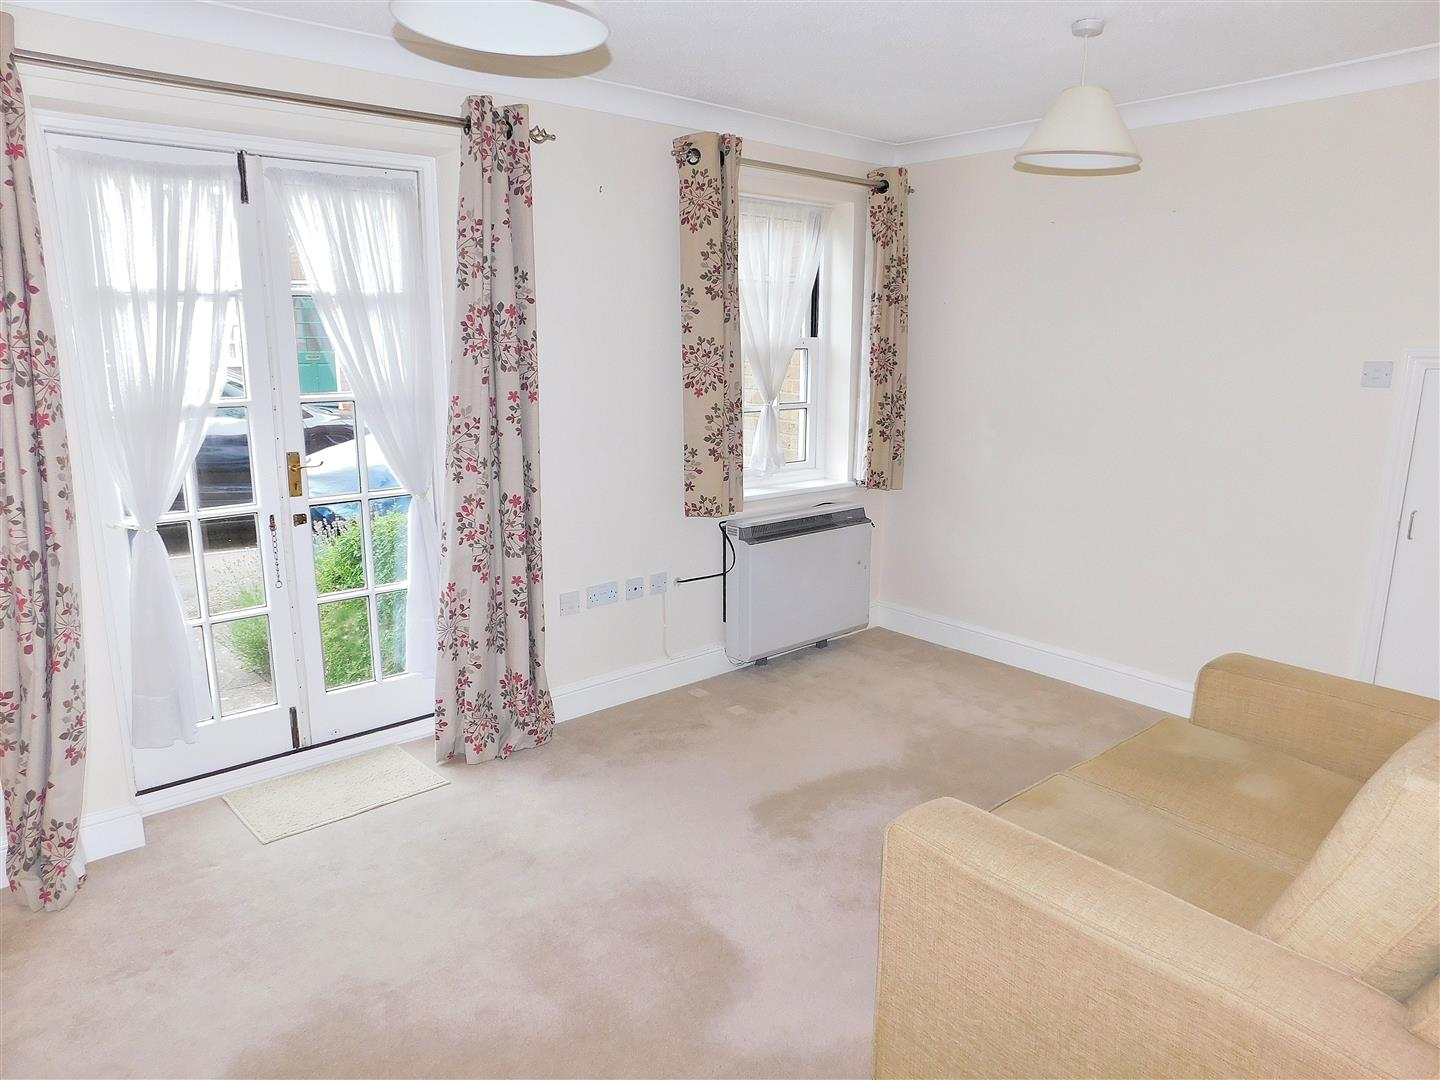 2 bed flat for sale in King's Lynn, PE30 1EG  - Property Image 3